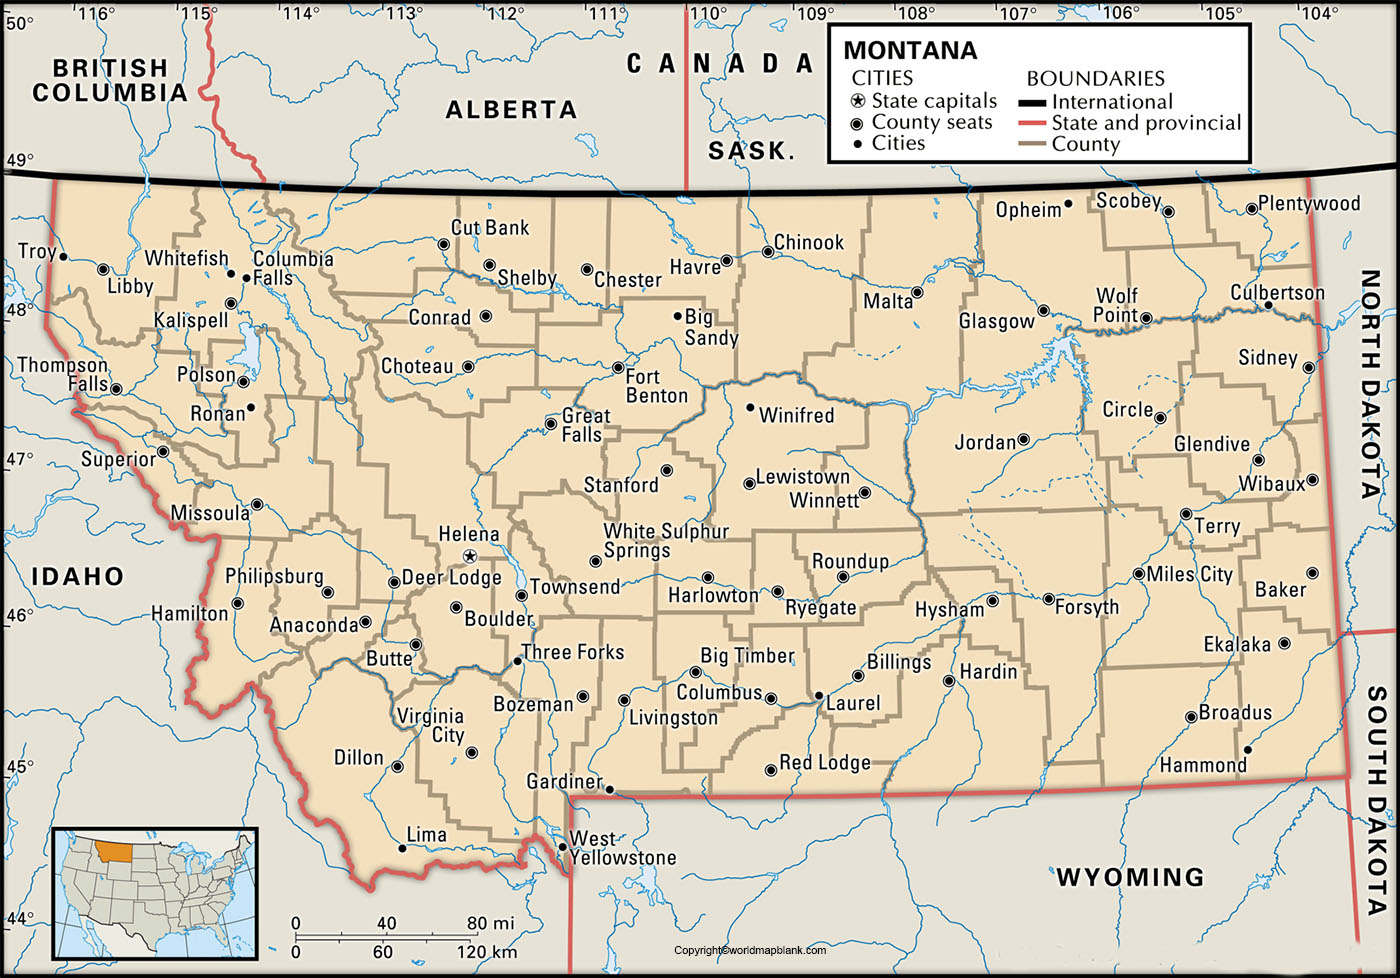 Labeled Map of Montana